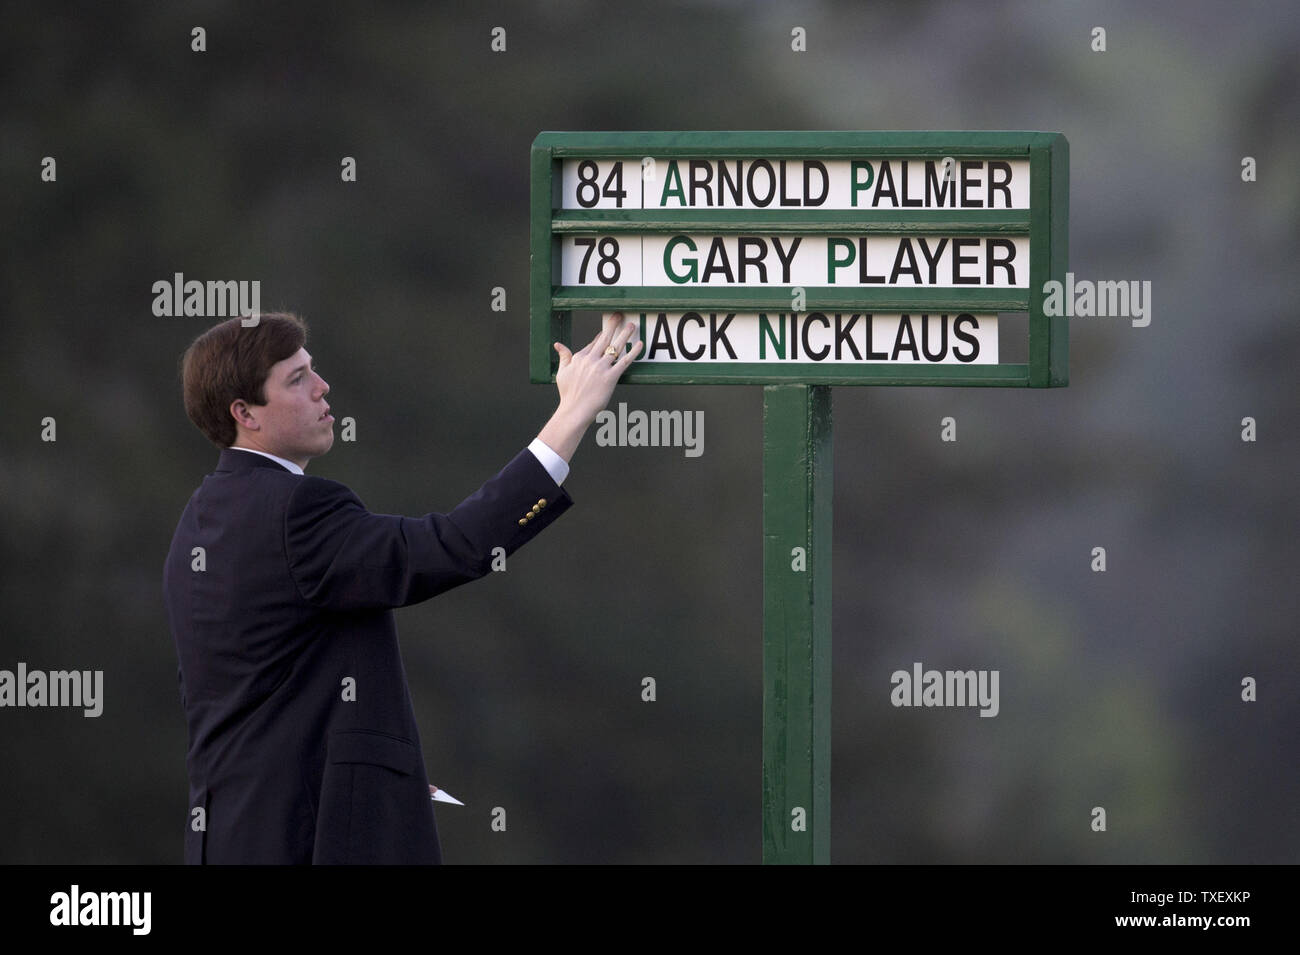 Name Of Stock Photos & Name Of Stock Images - Page 40 - Alamy